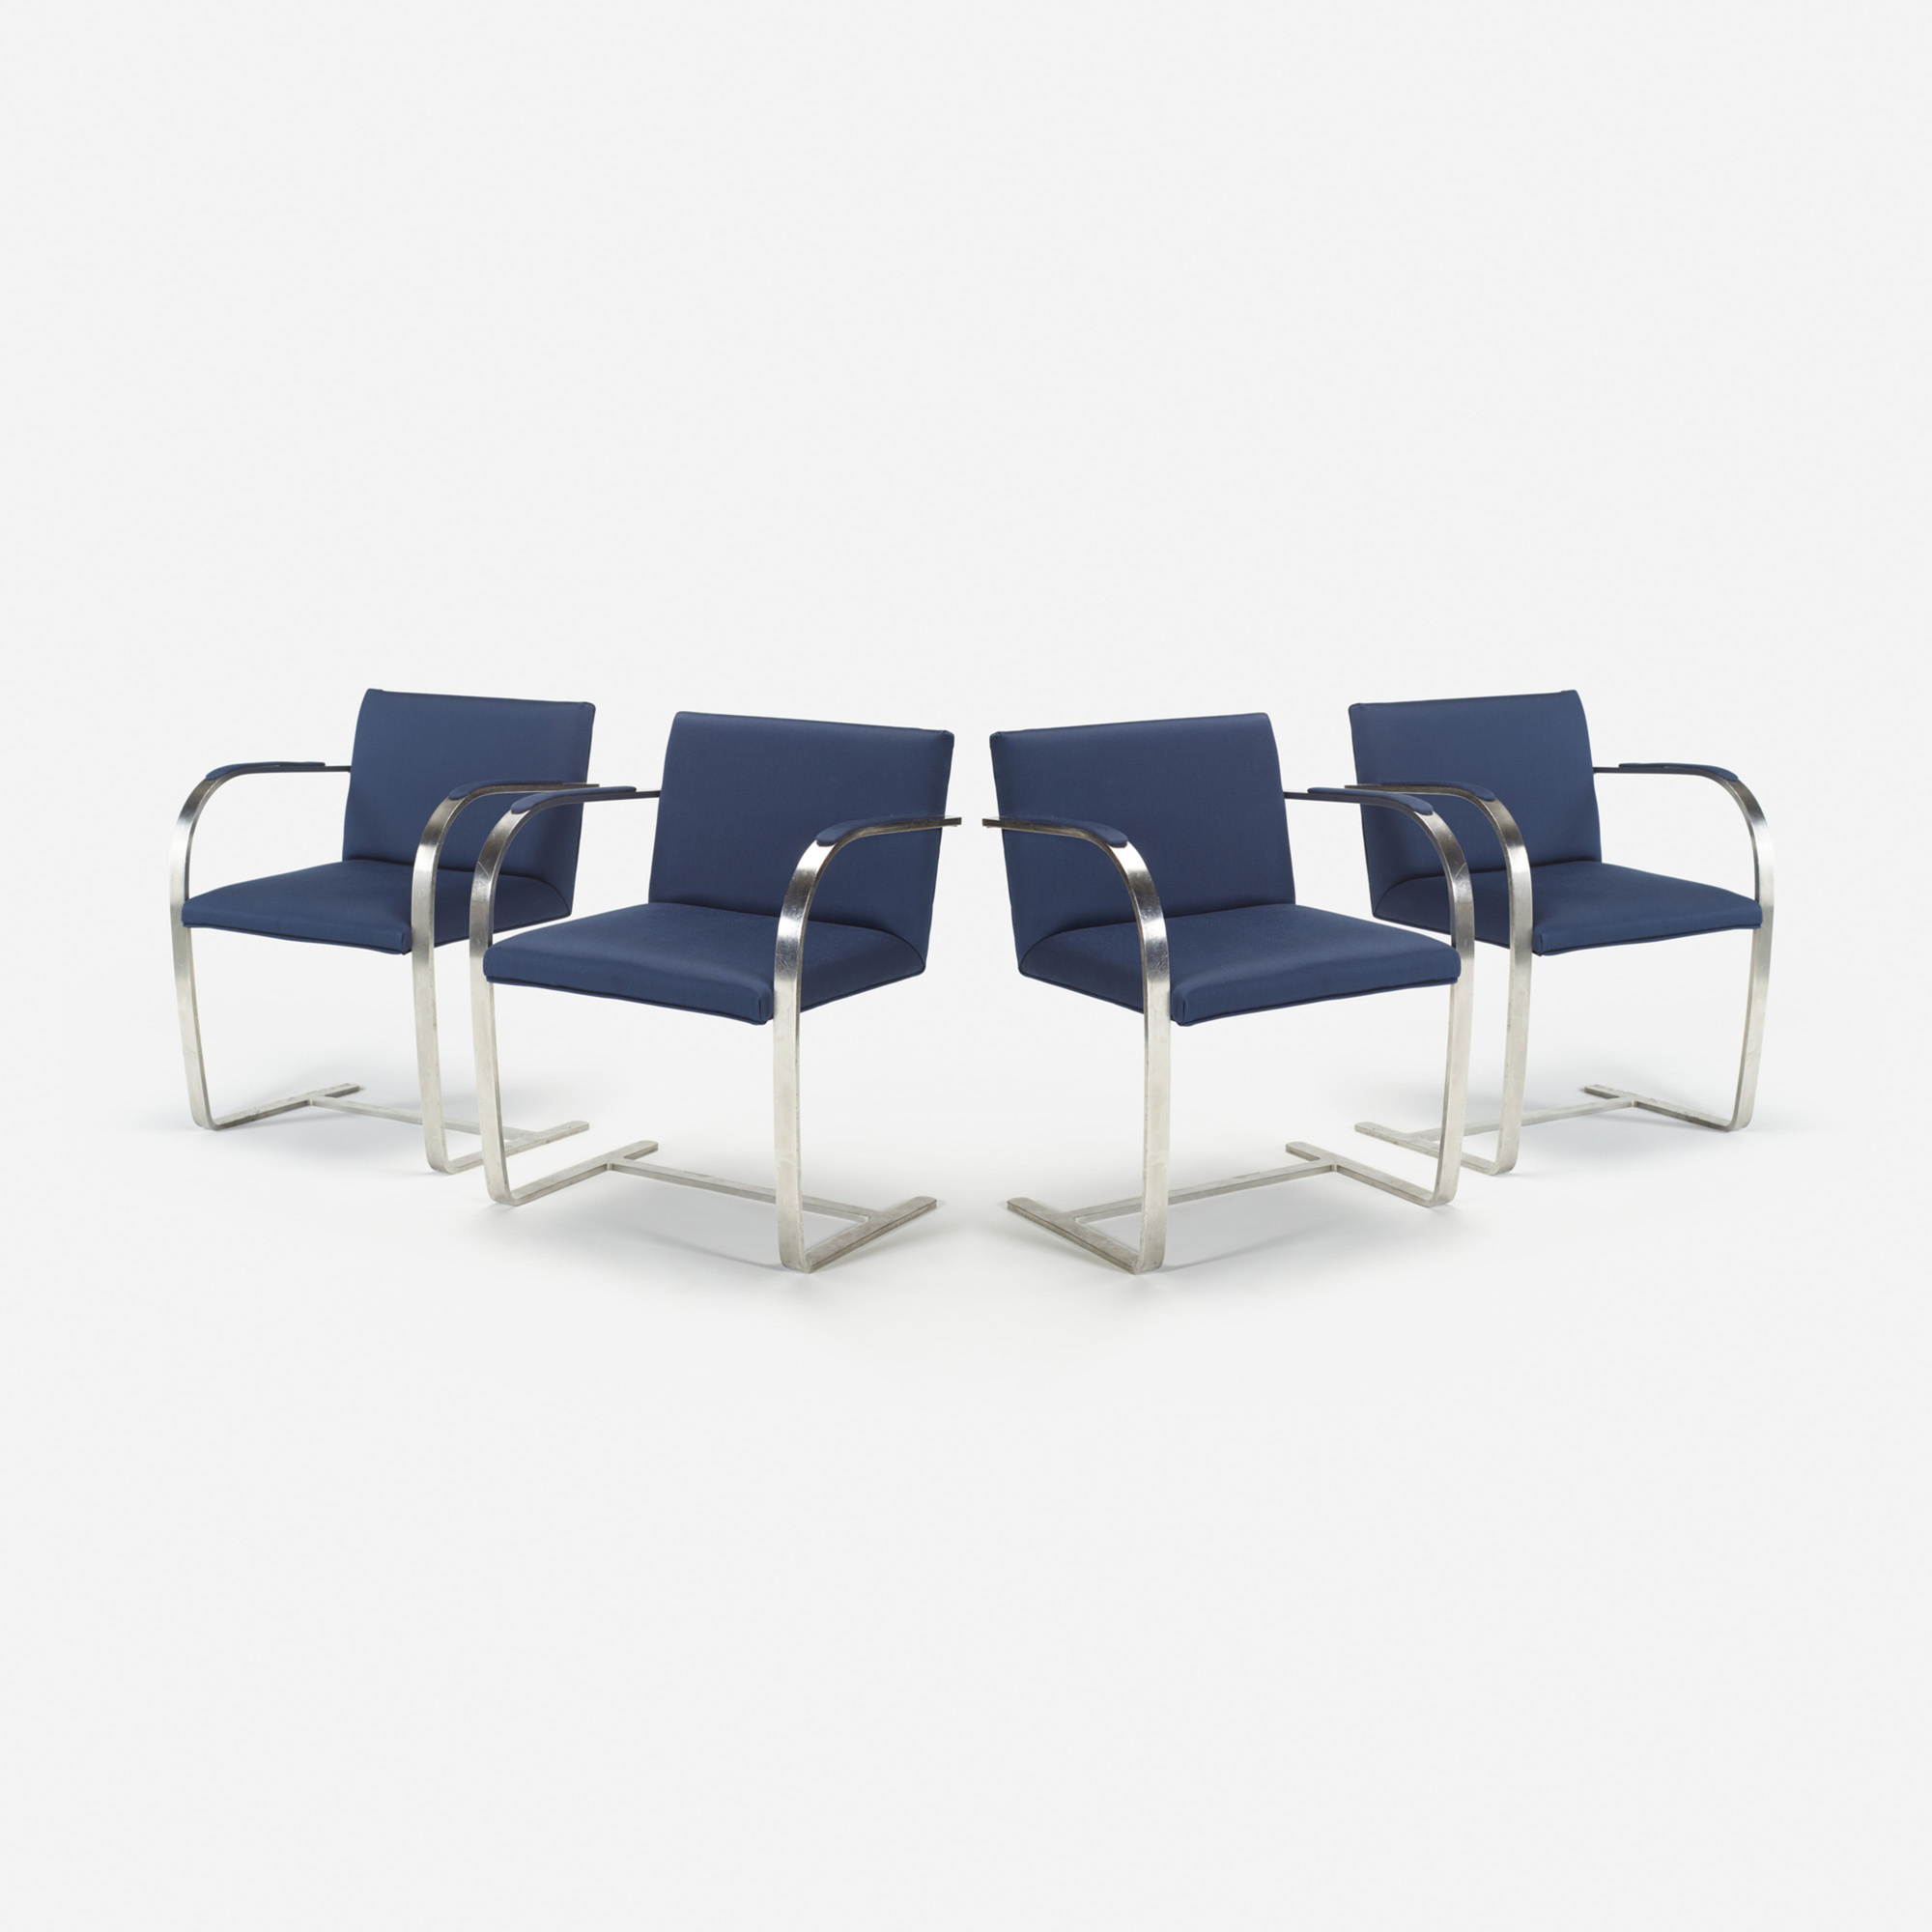 705: Ludwig Mies van der Rohe / Brno chairs from The Four Seasons, set of four (1 of 1)